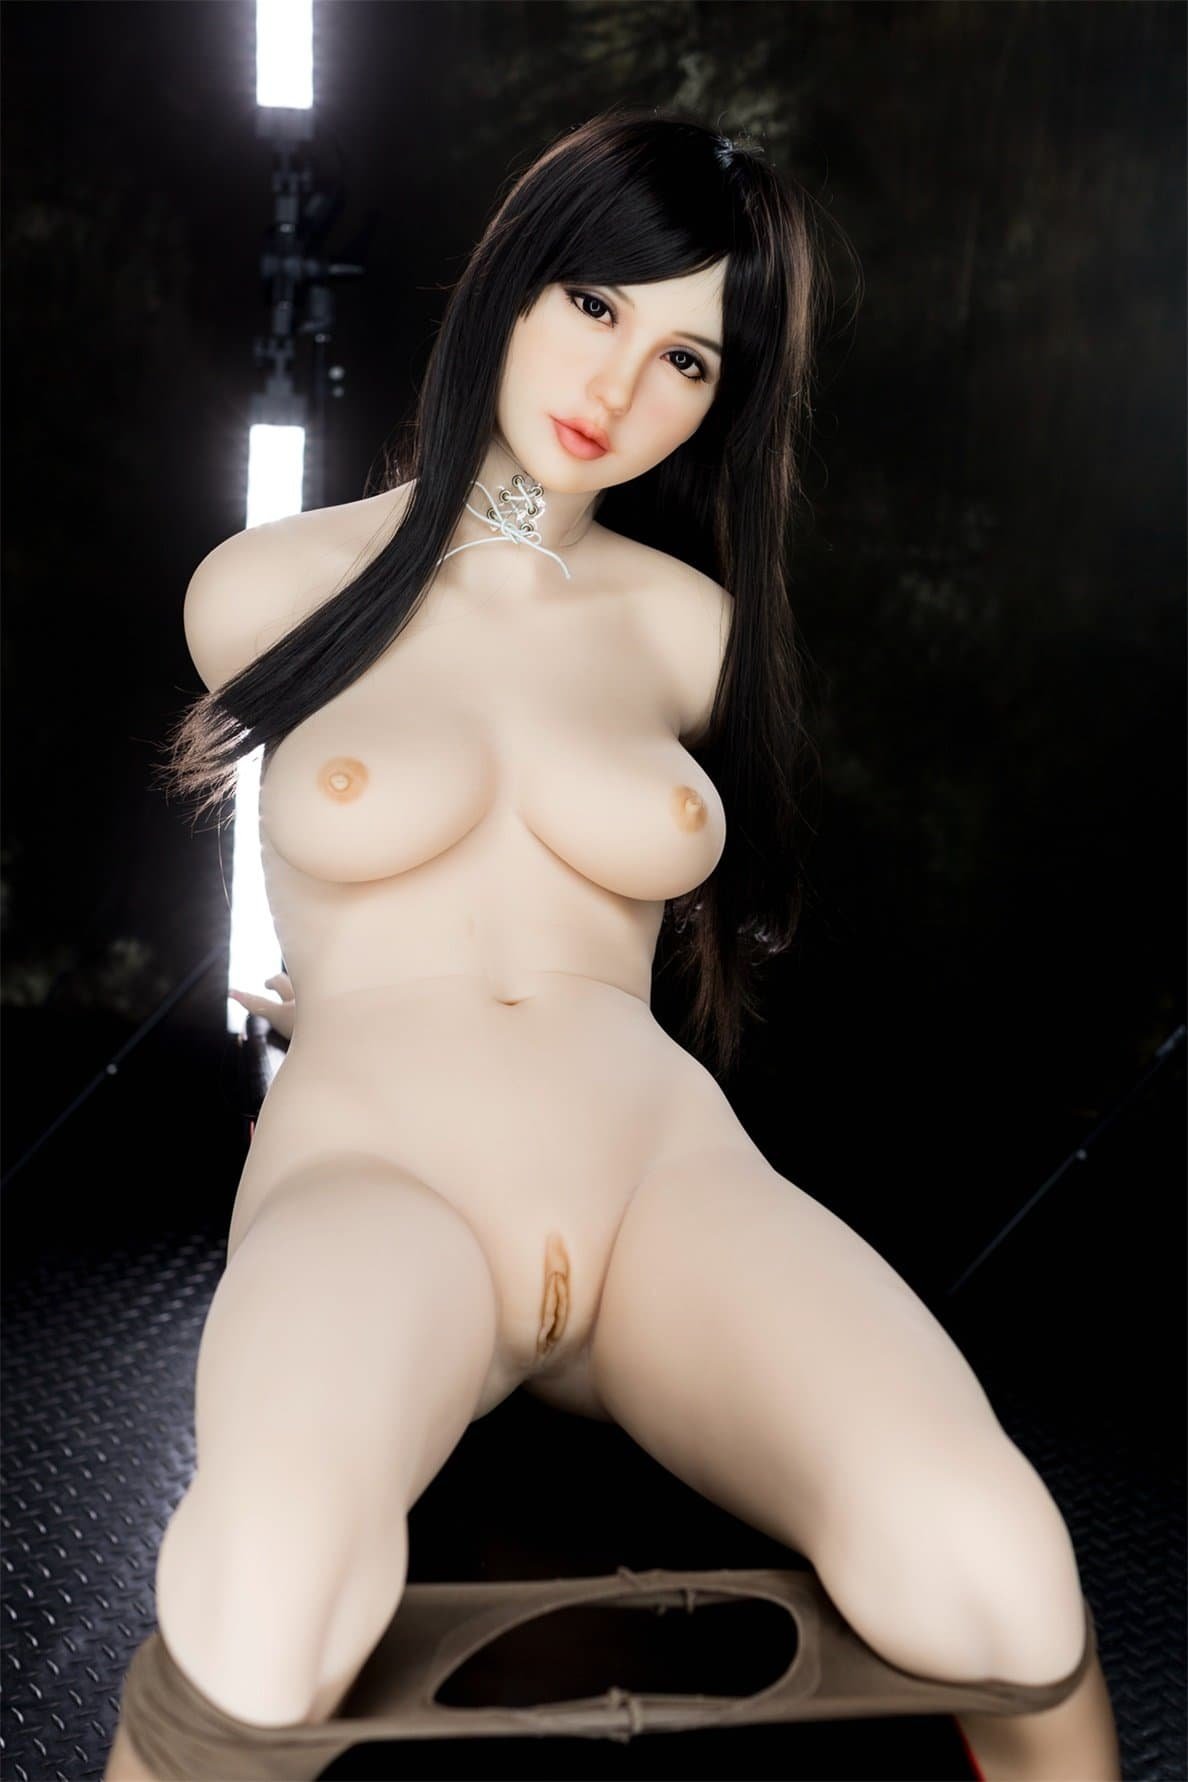 chyna 163cm black hair japanese big boobs athletic tpe wm sex doll(10)